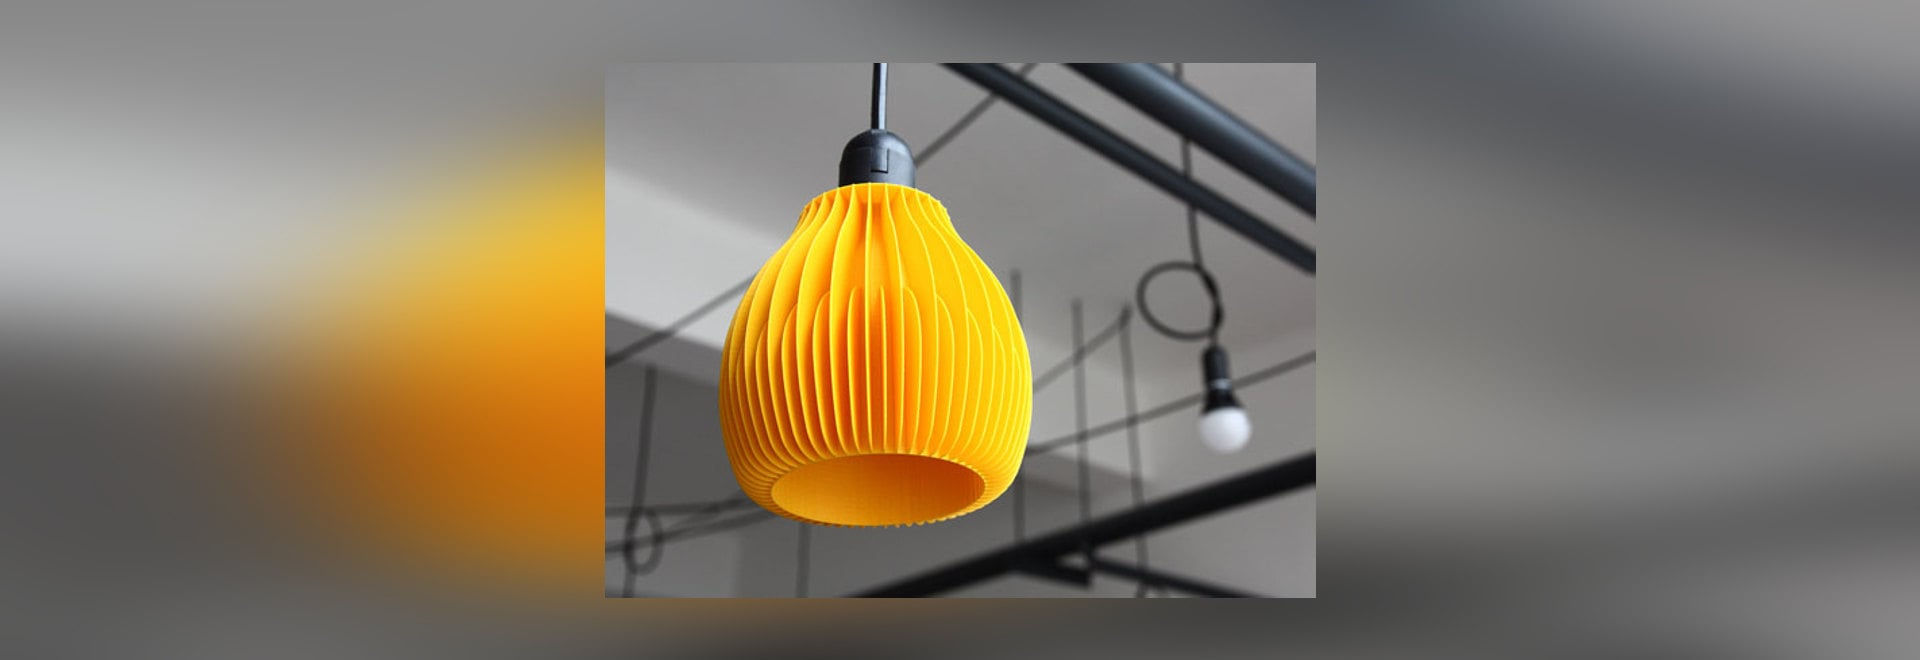 Ribone Lamp Shades by Martin Zampach